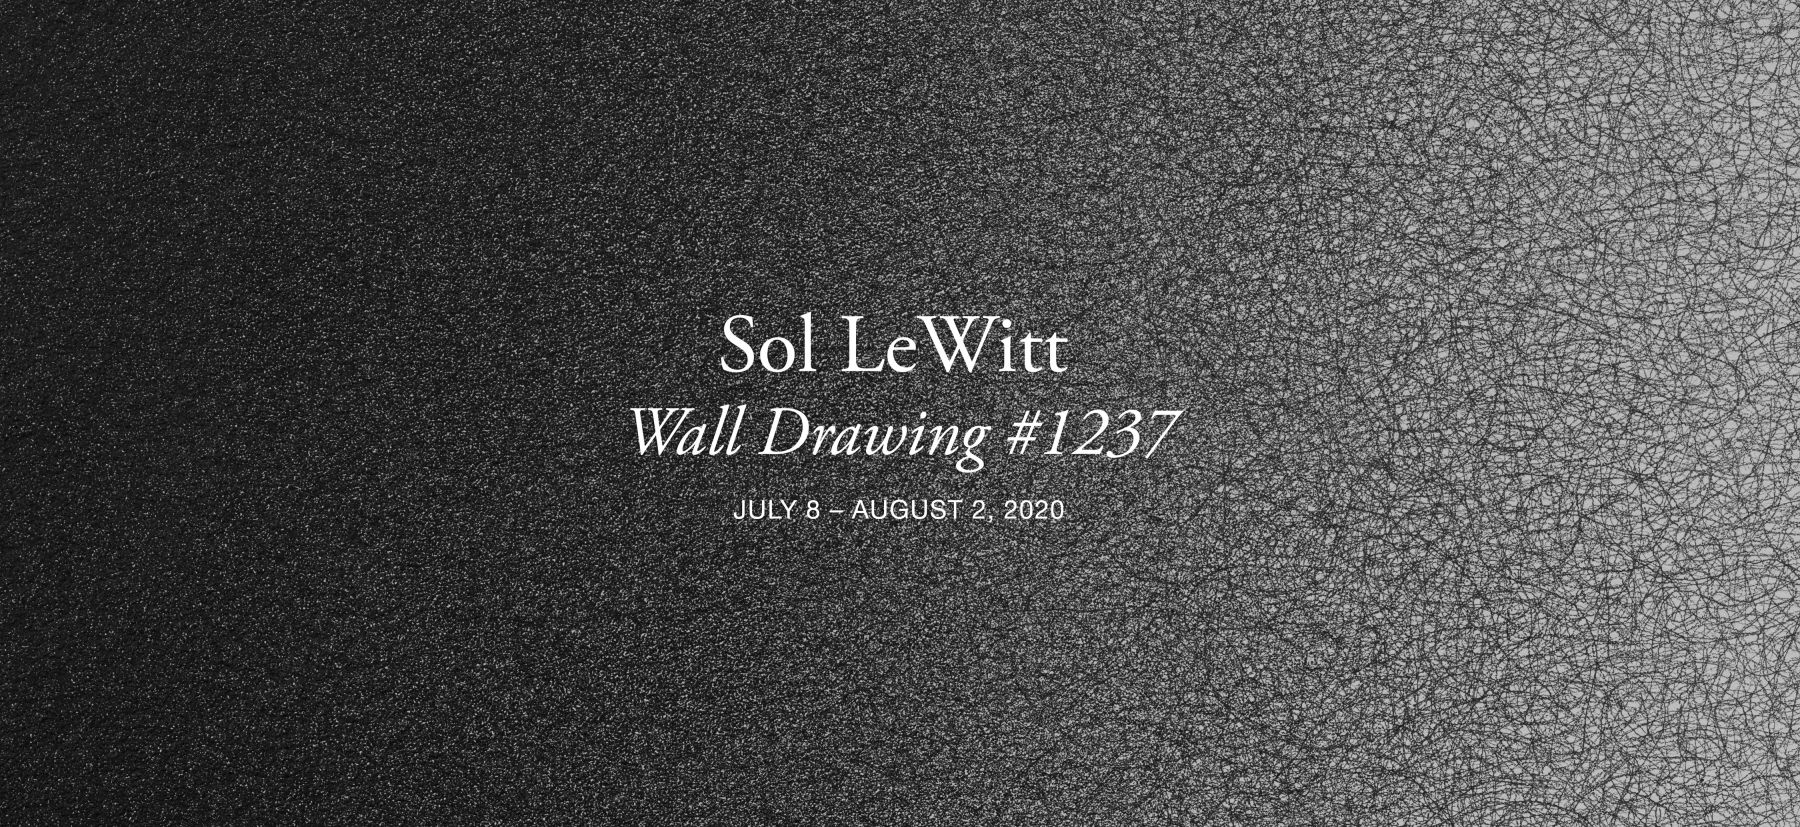 "Detail of Sol LeWitt's ""Wall Drawing #1237, Scribbles (BKSR)."" First installation: Steve Reich and Beryl Korot residence, Pound Ridge, New York, May 2007. graphite. 9 x 7 ft (274.3 x 213.4 cm)."